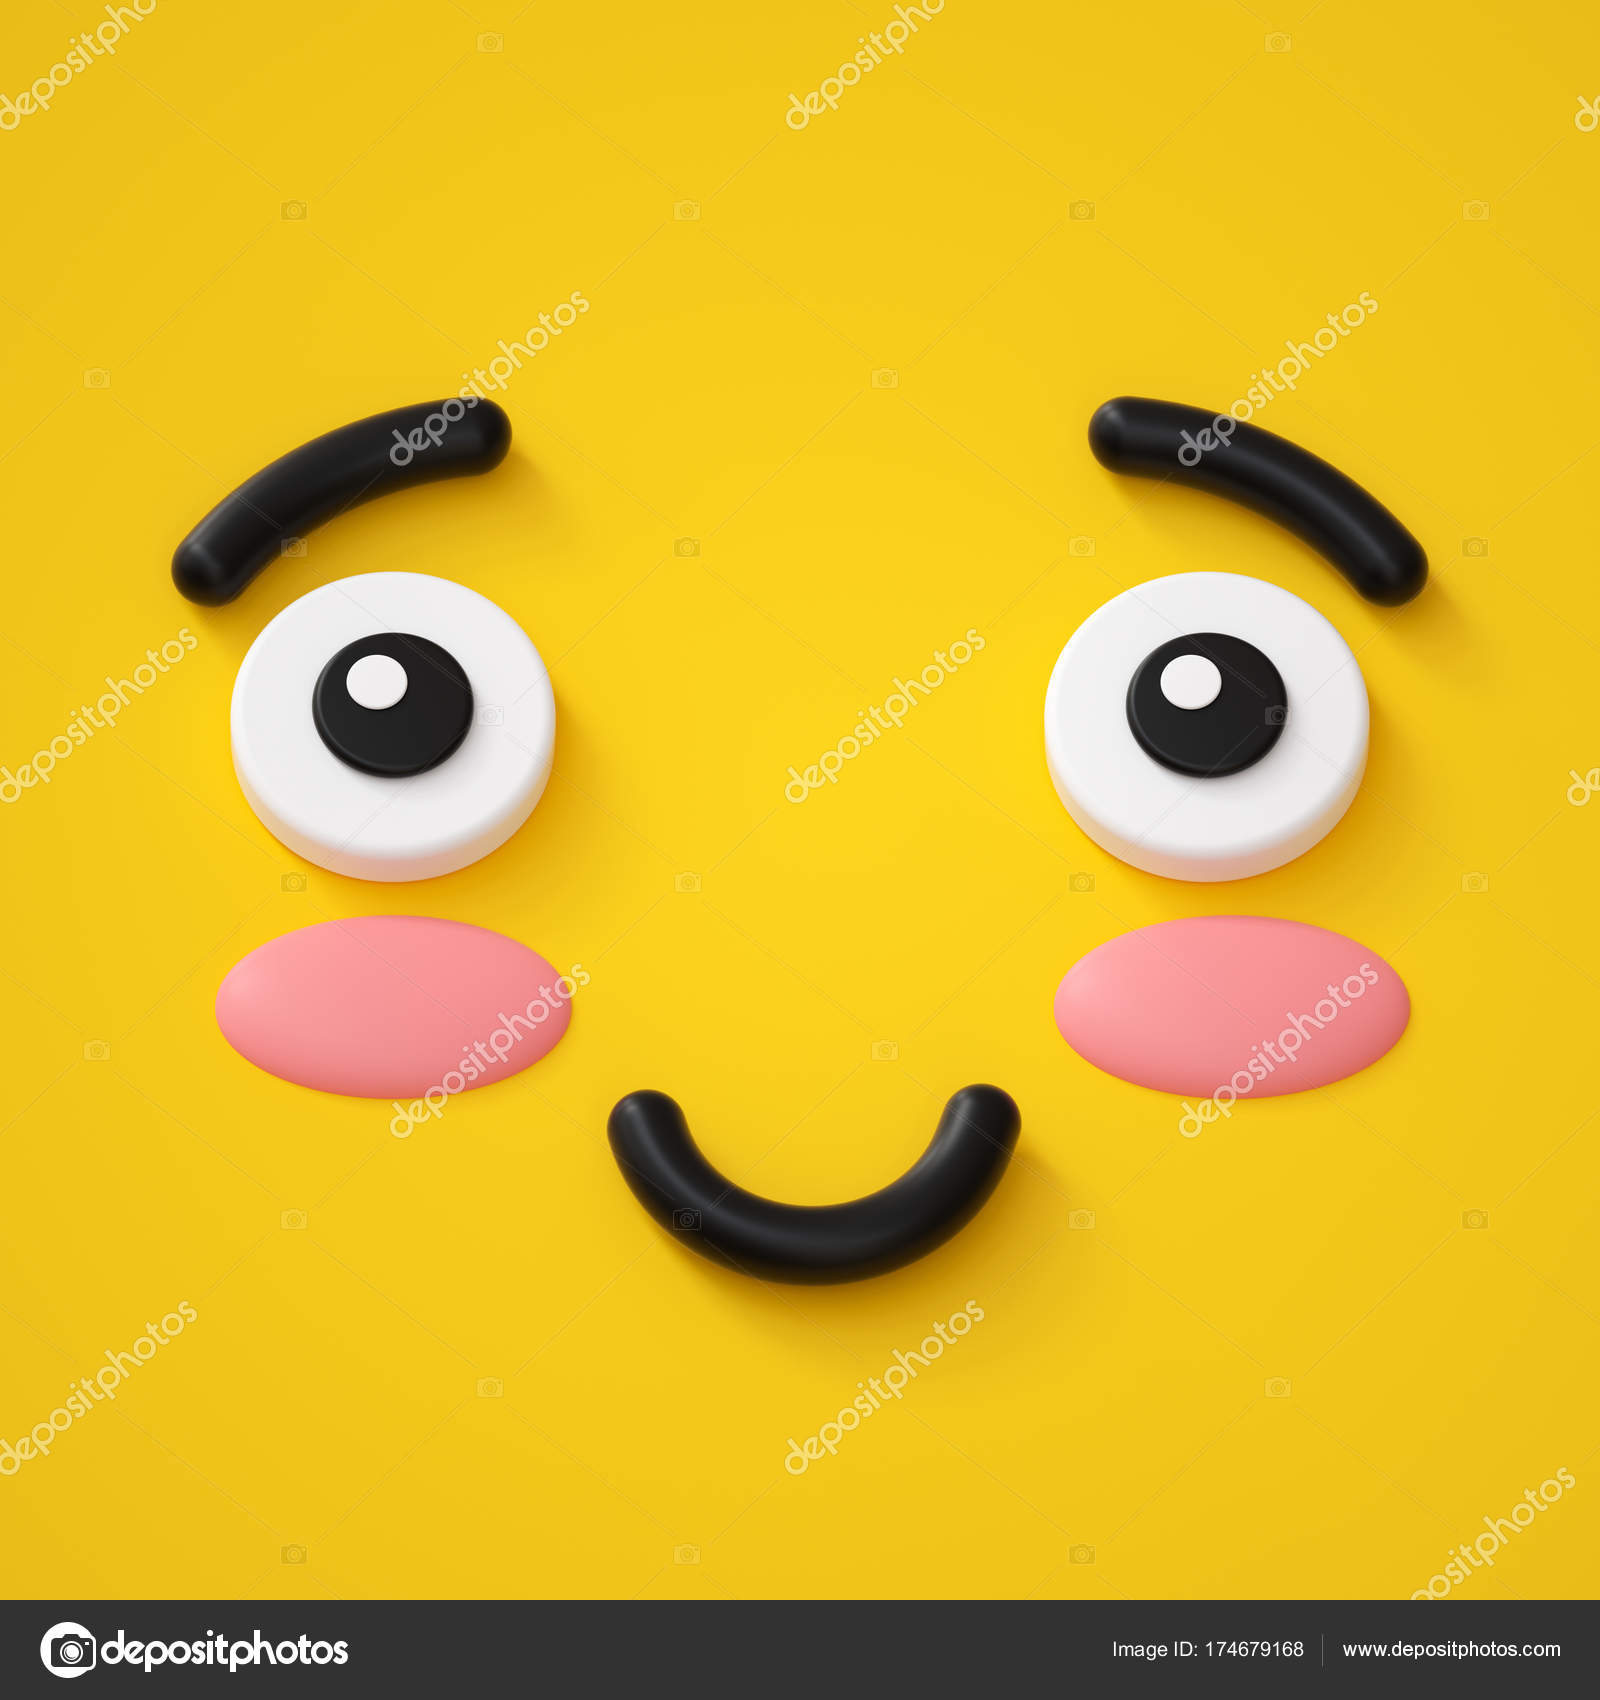 schüchterner Smiley Emoticon